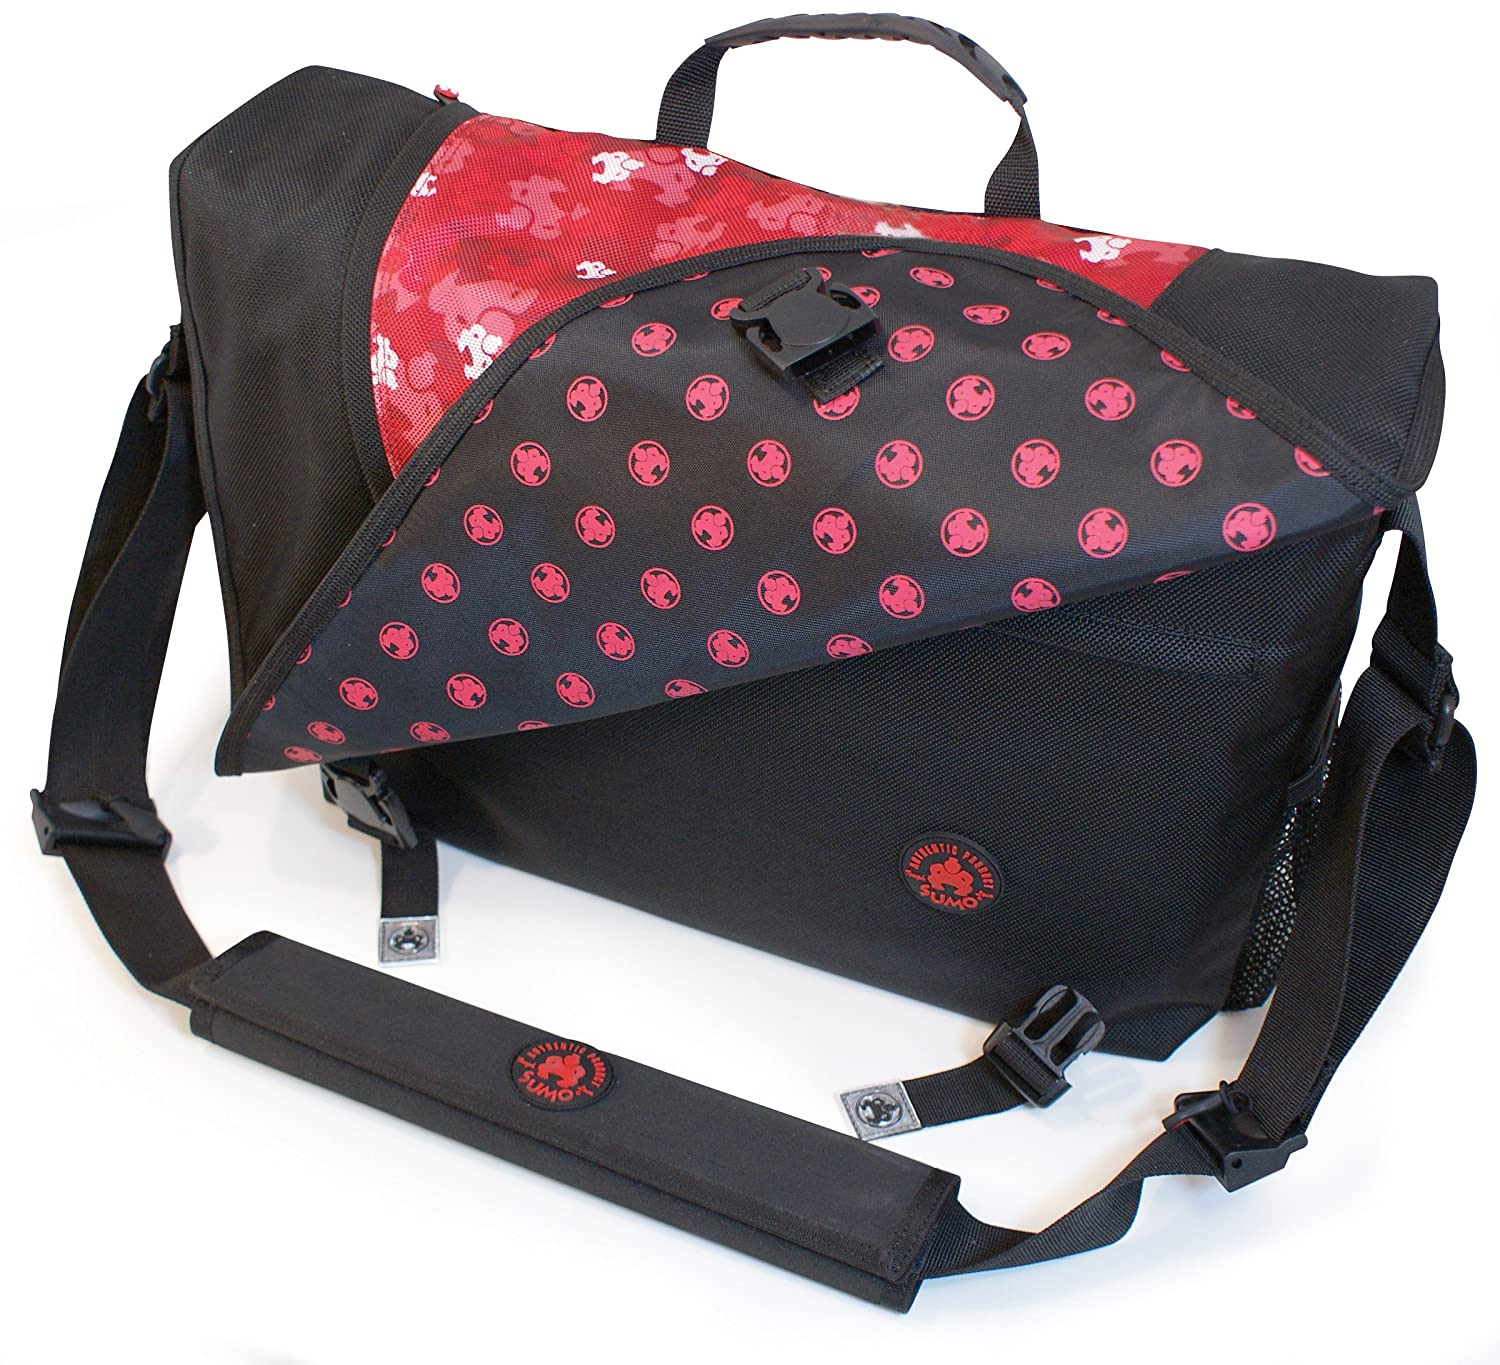 Amazon.com: Sumo Sumo Laptop Mensajero Bag- 16 pulgadas PC / 17-Inch Mac (Red Camo): Electronics